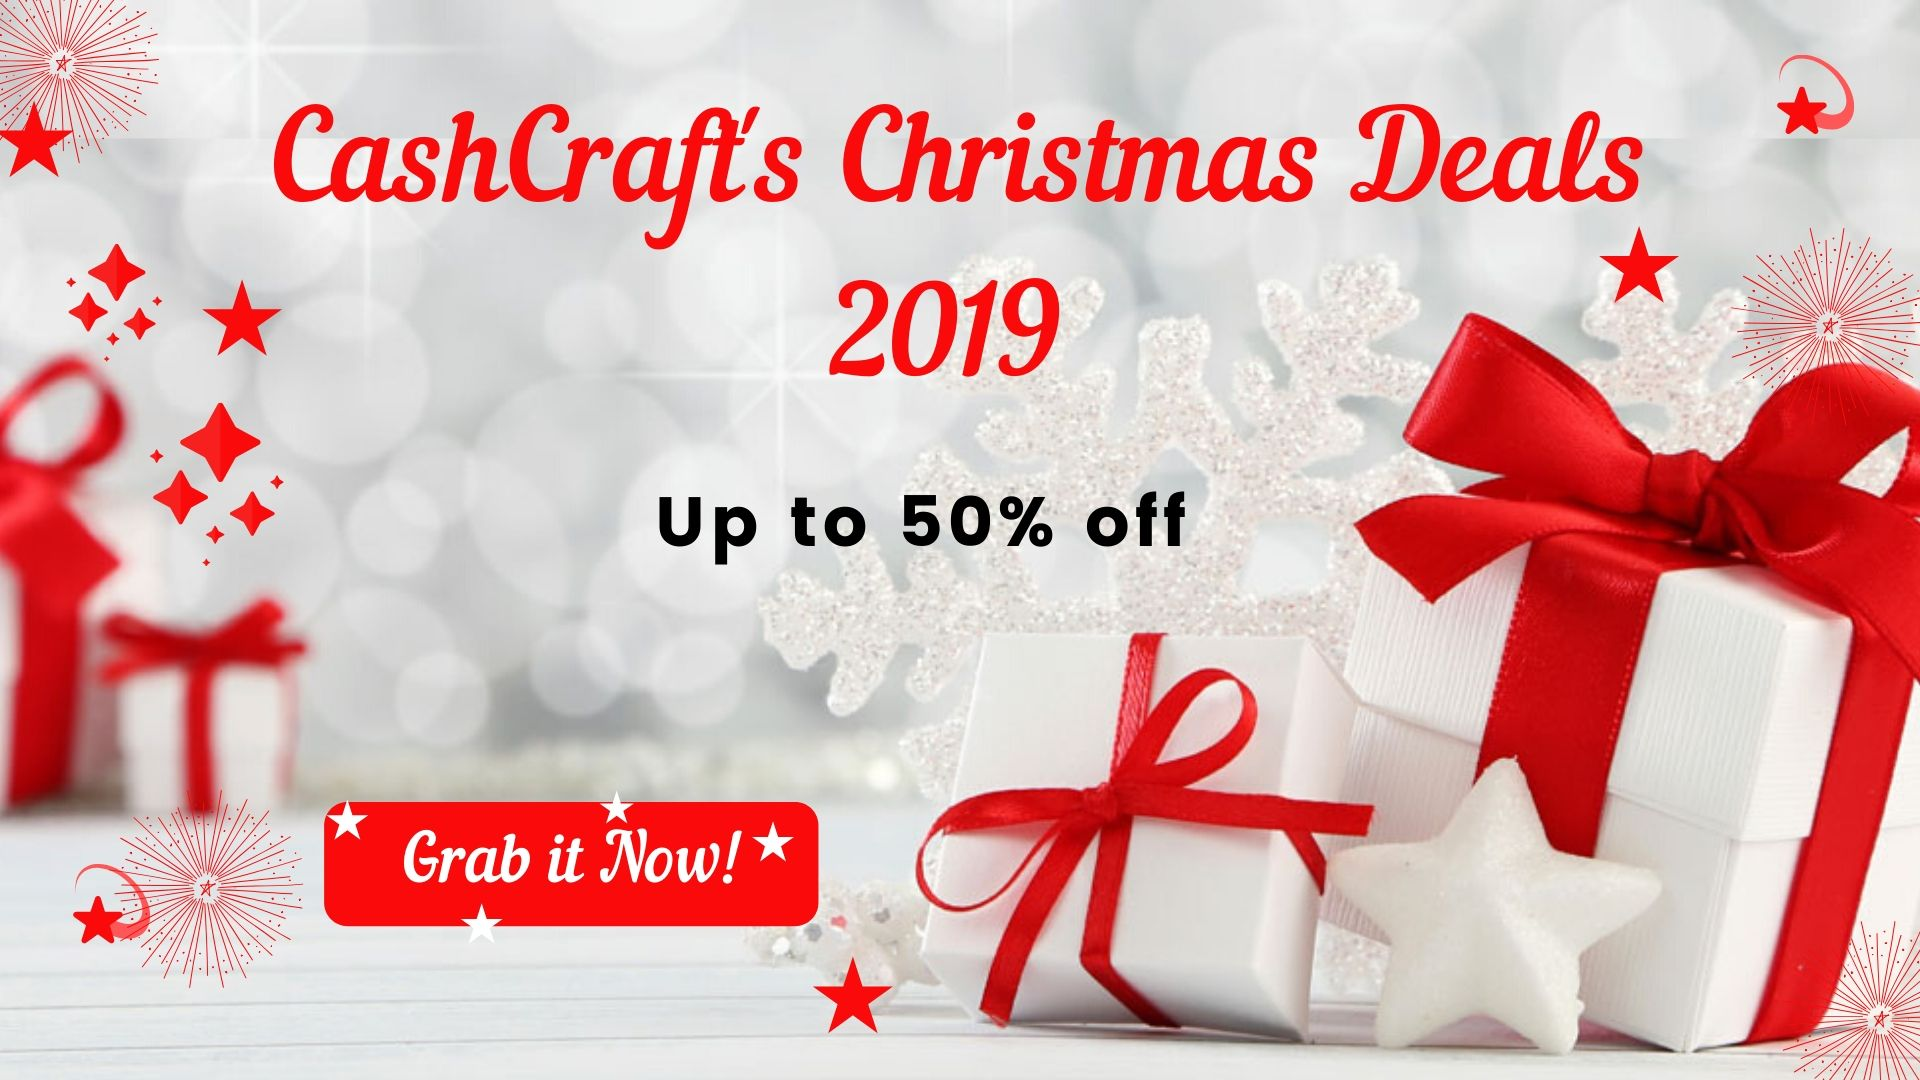 CashCraft's Christmas Deals 2019 | Up to 50% off on Cashback Web & App Development